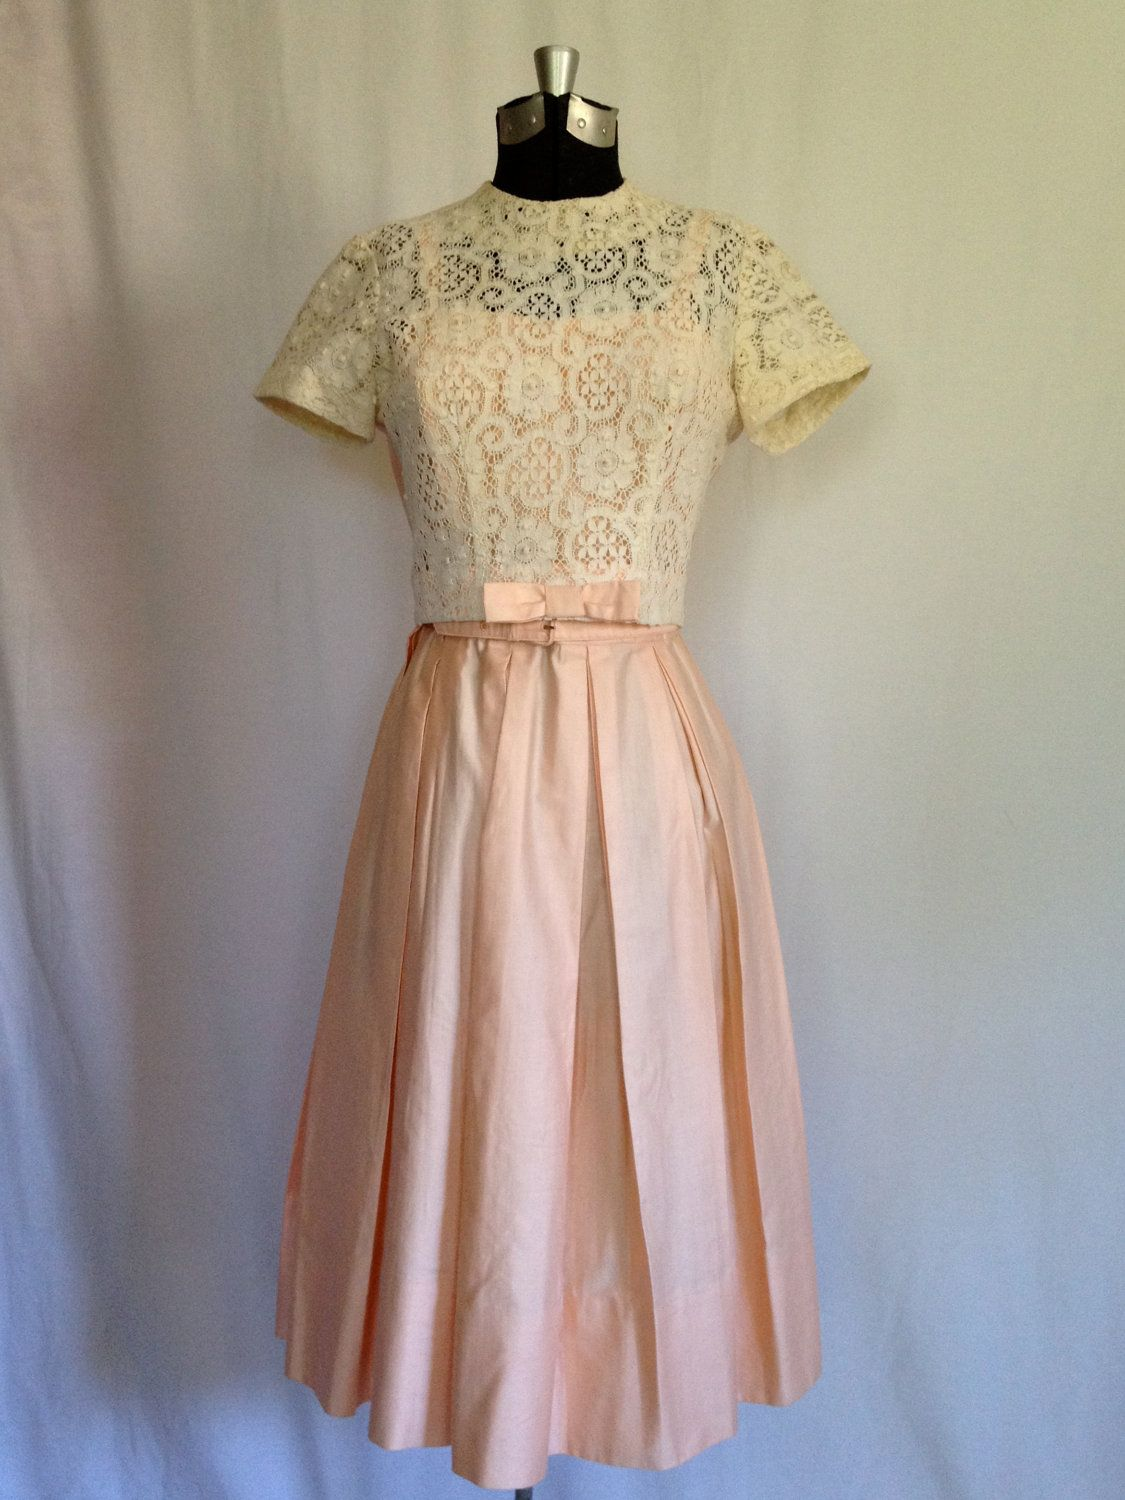 Lace dress 50s  Vintage us Polished Cotton Pretty Pink Party Dress  Small